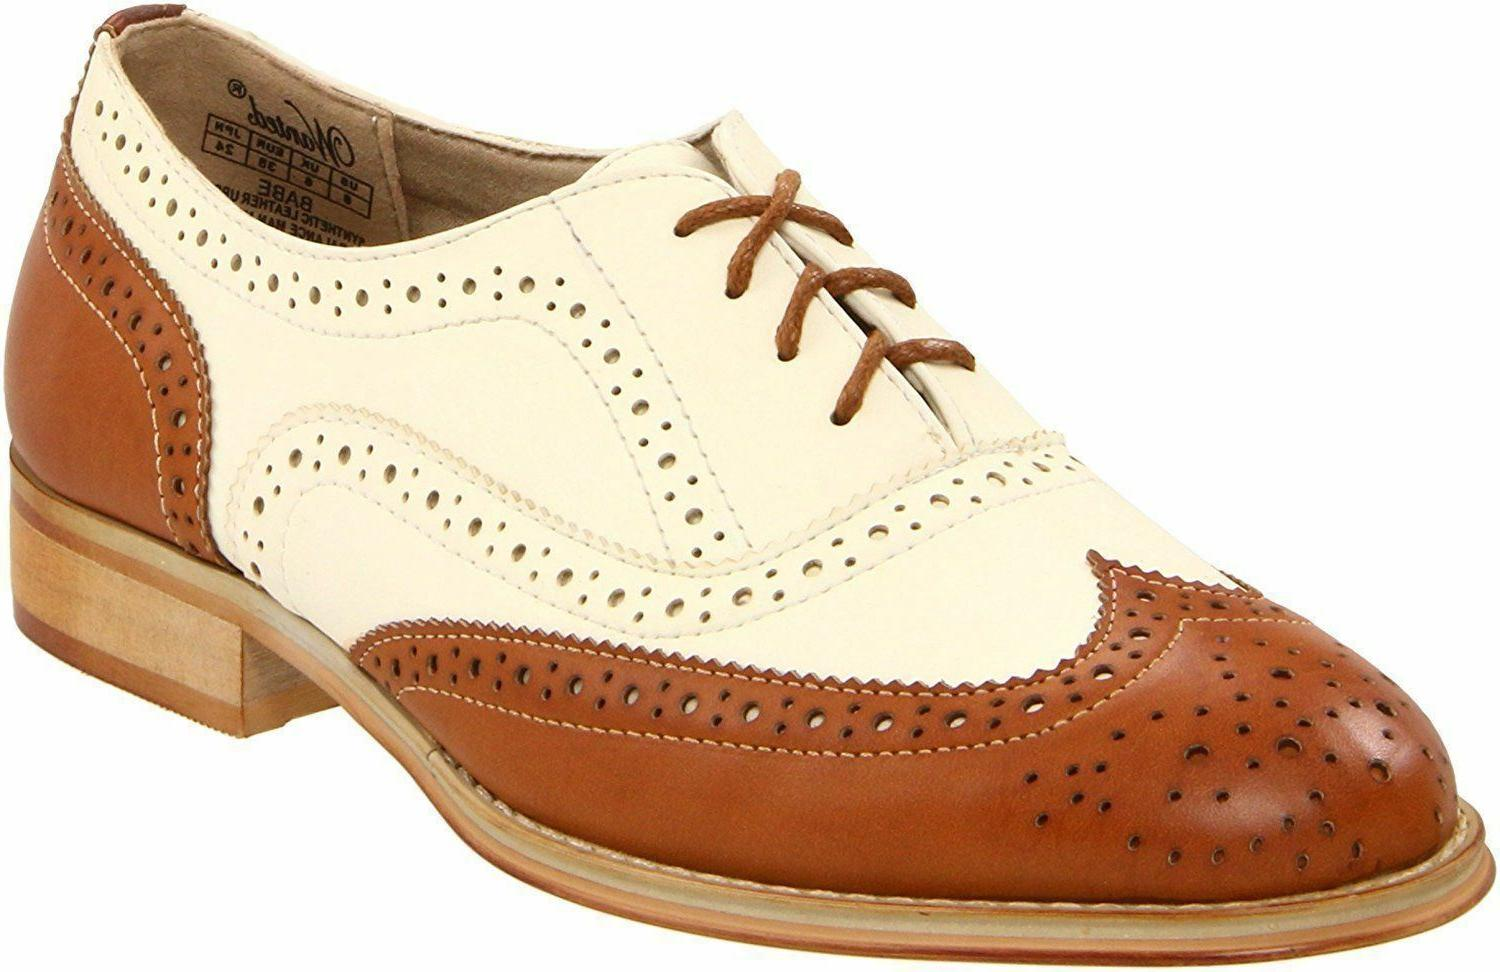 NEW WANTED BABE WOMEN'S SHOES TAN NATURAL RETRO CLASSIC FLAT